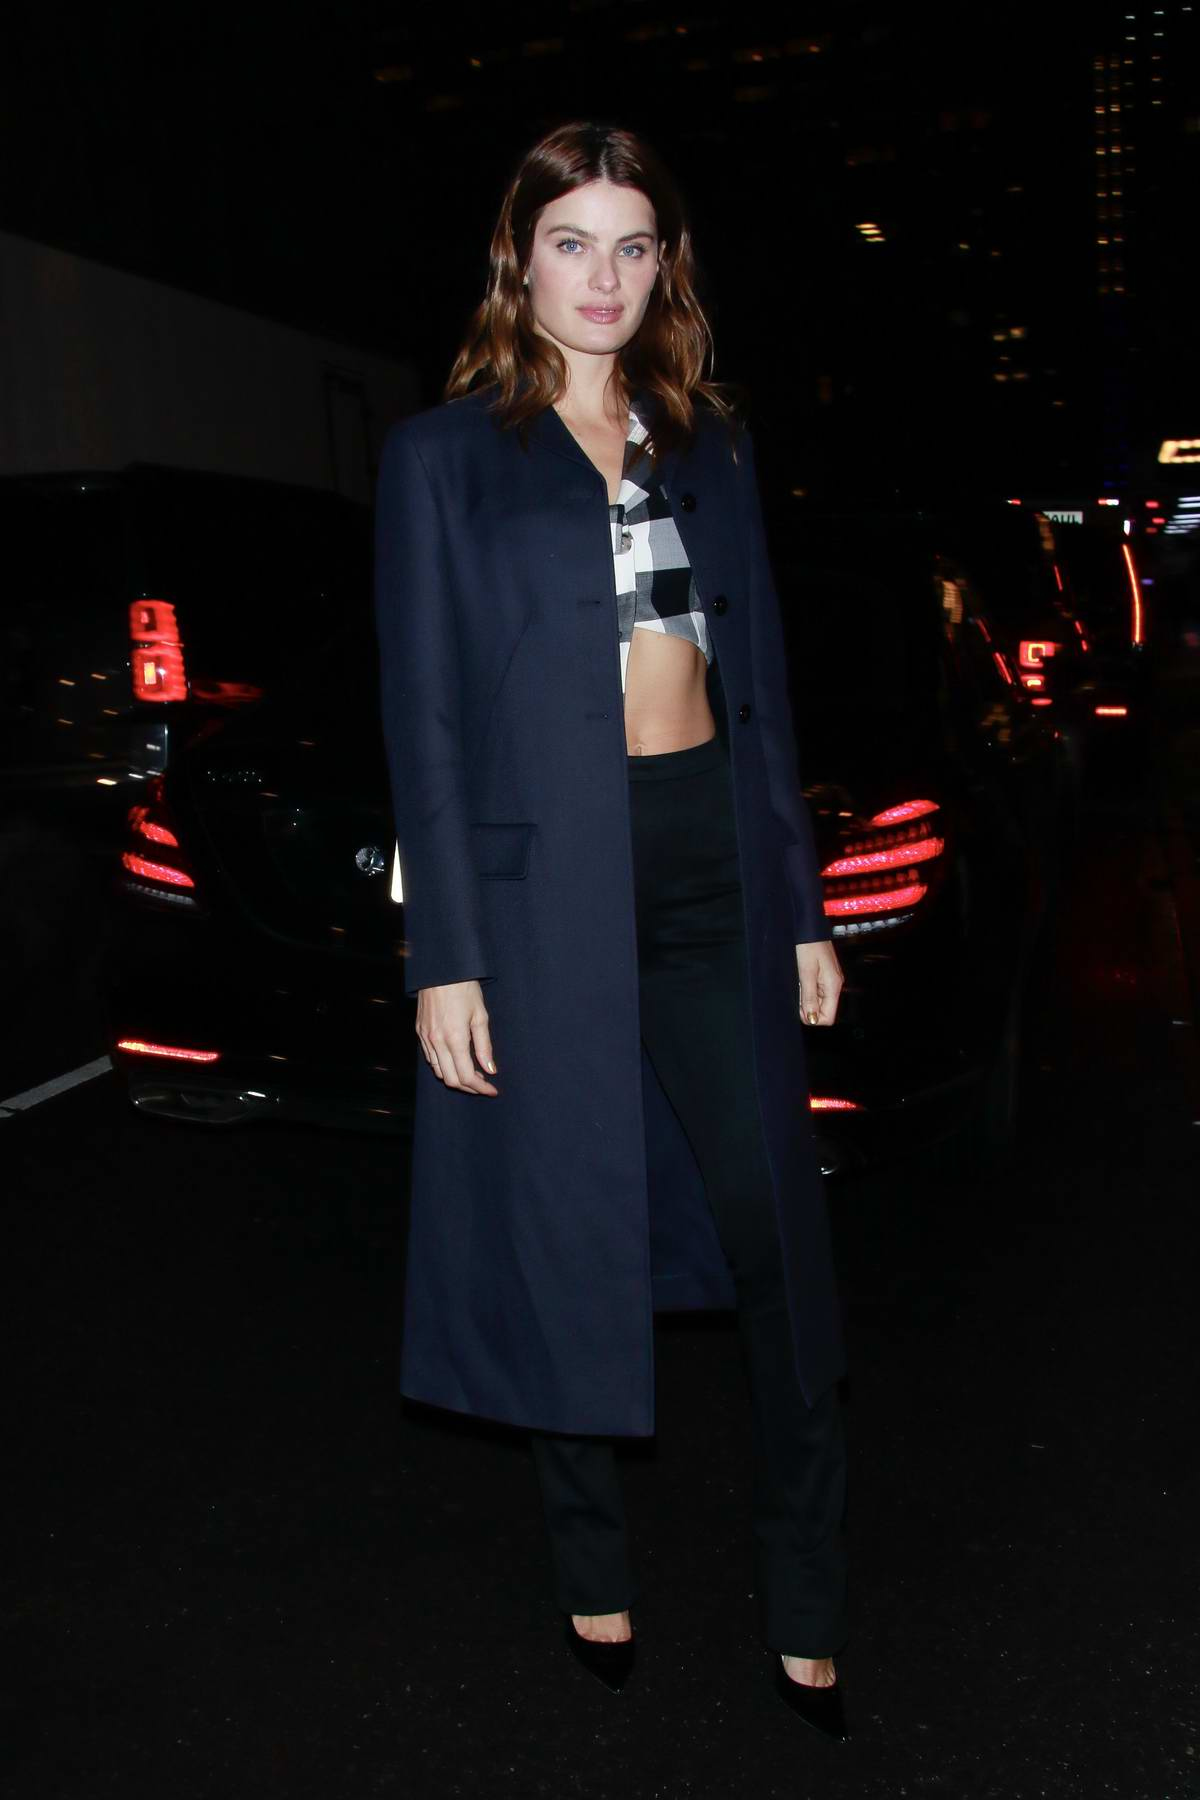 Isabeli Fontana looks chic in a navy blue blazer with a plaid crop top and black trousers during a night out in New York City